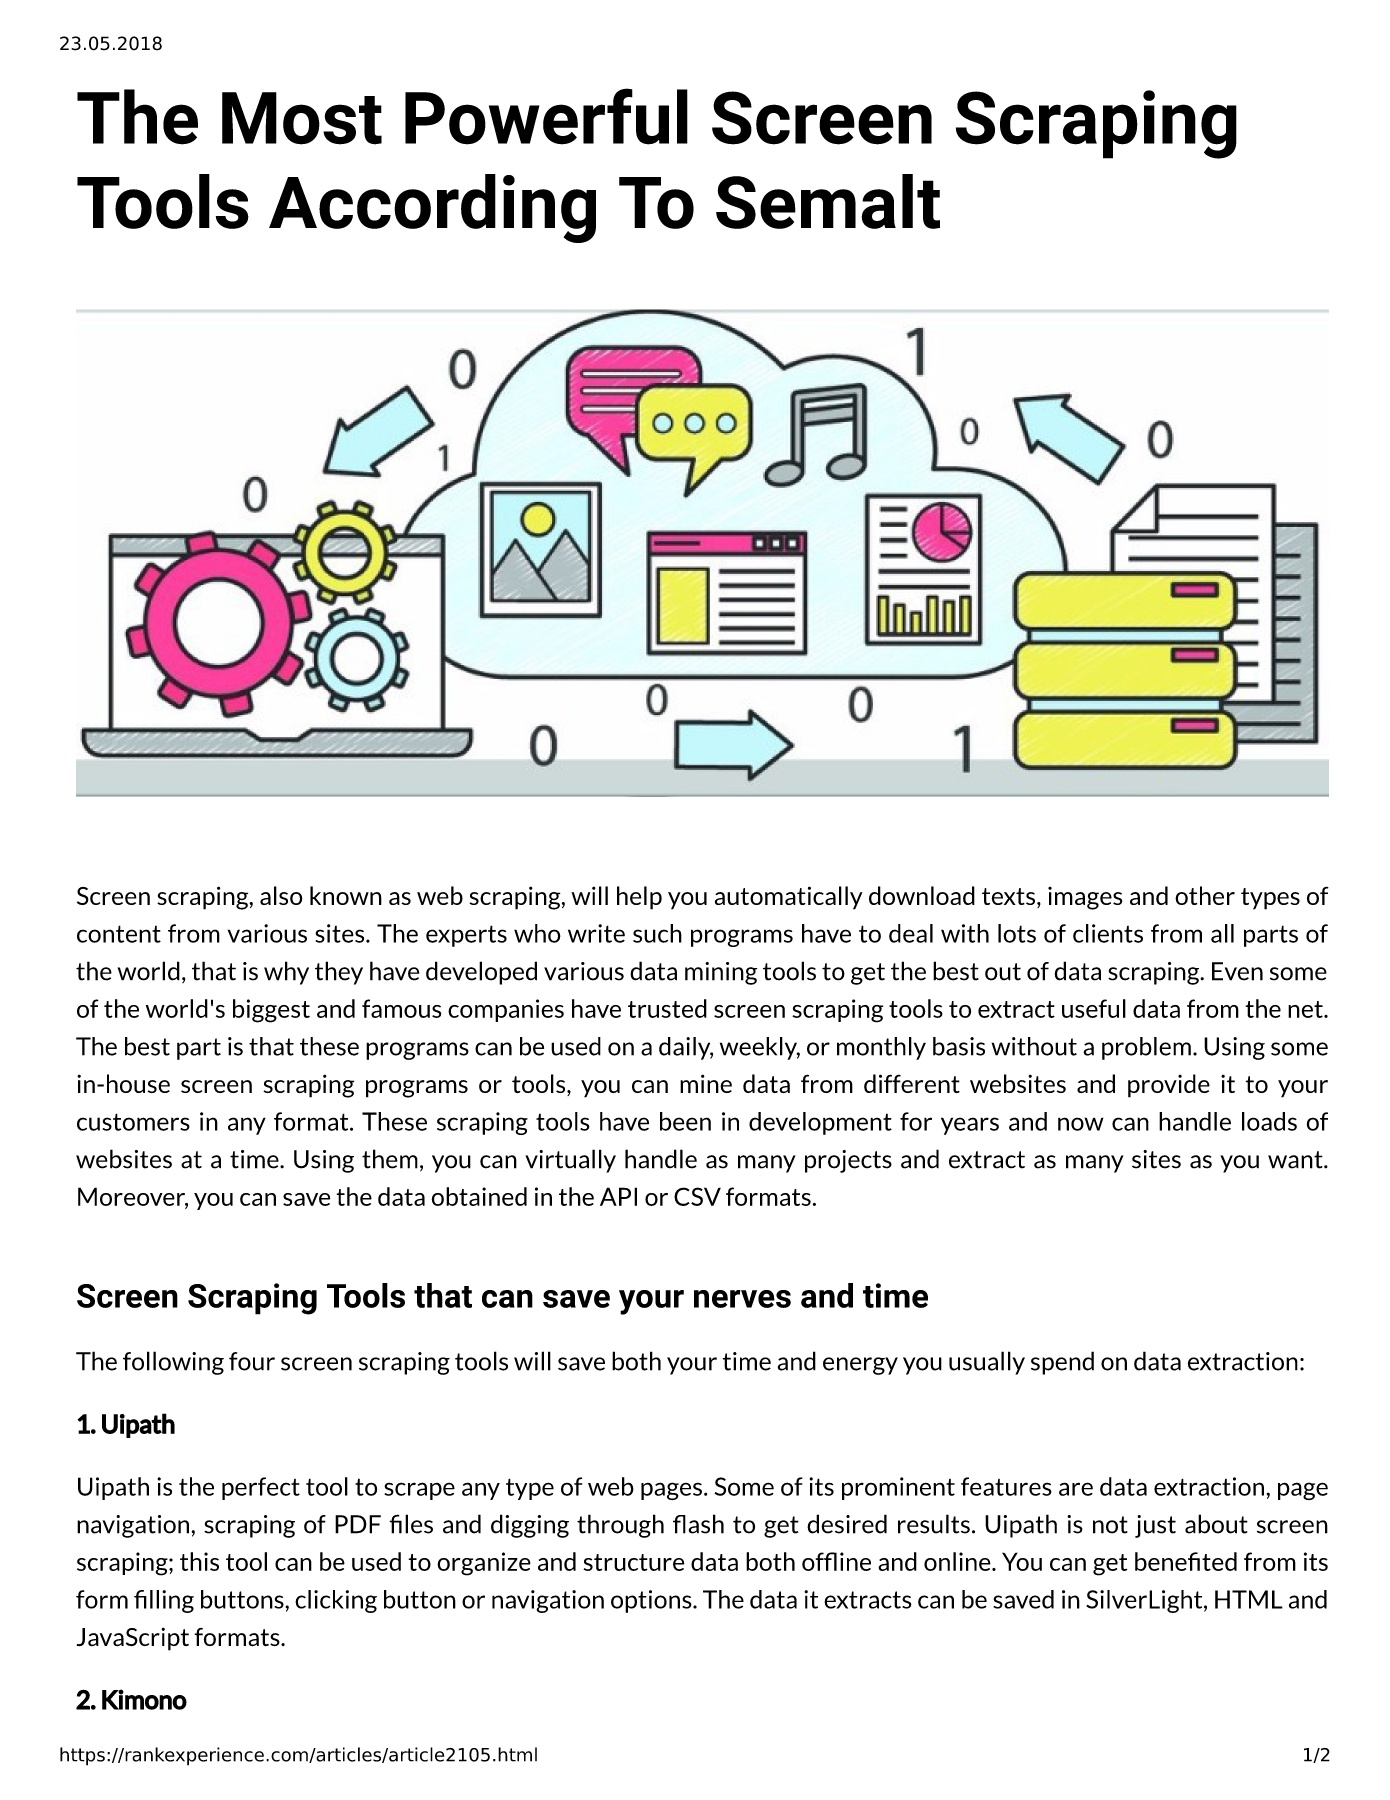 The Most Powerful Screen Scraping Tools According To Semalt Pages 1